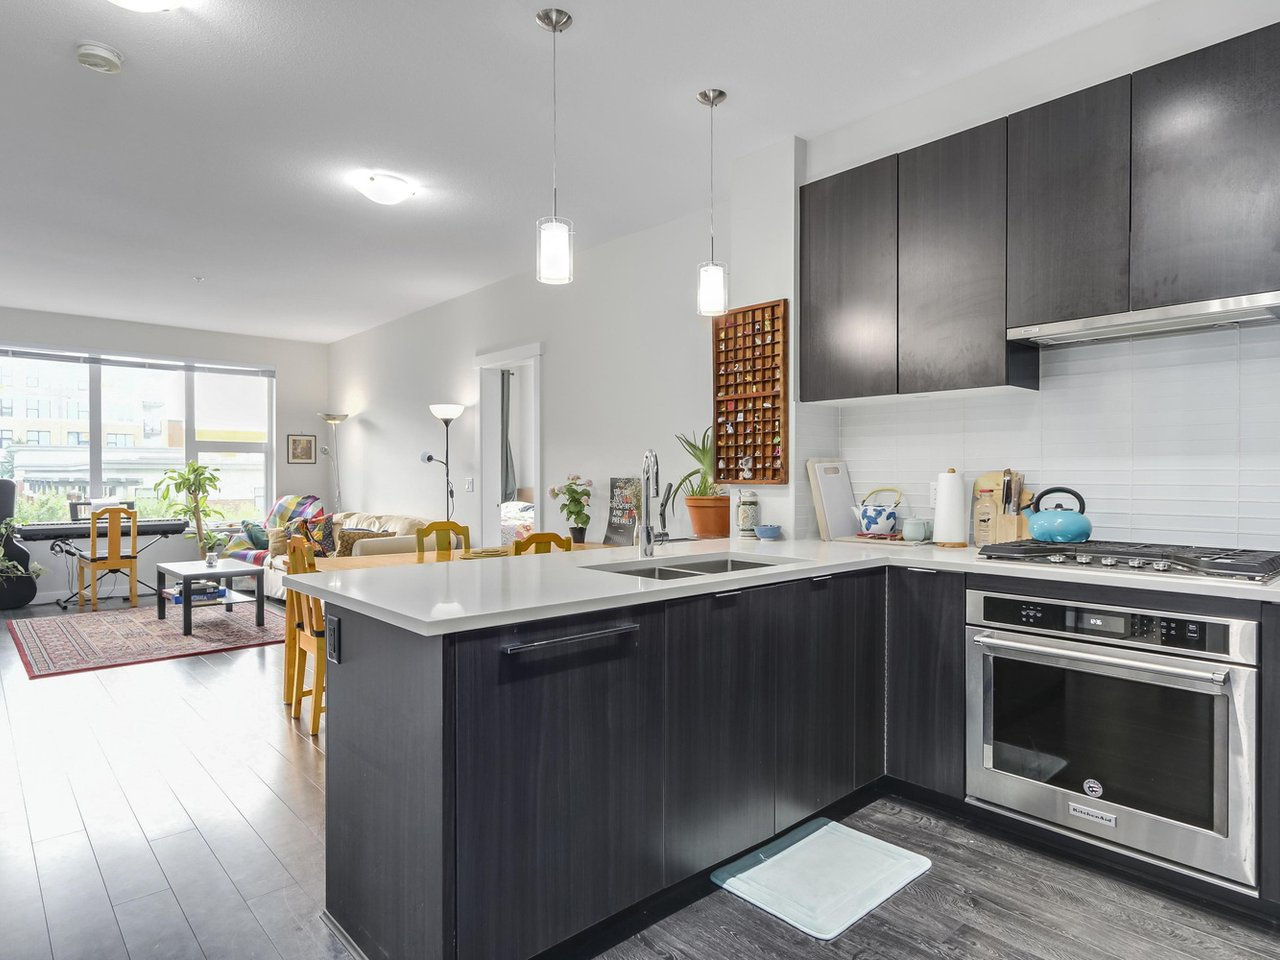 Kitchen - West Cambie - 9388 Tomicki Avenue, Richmond, BC, Canada